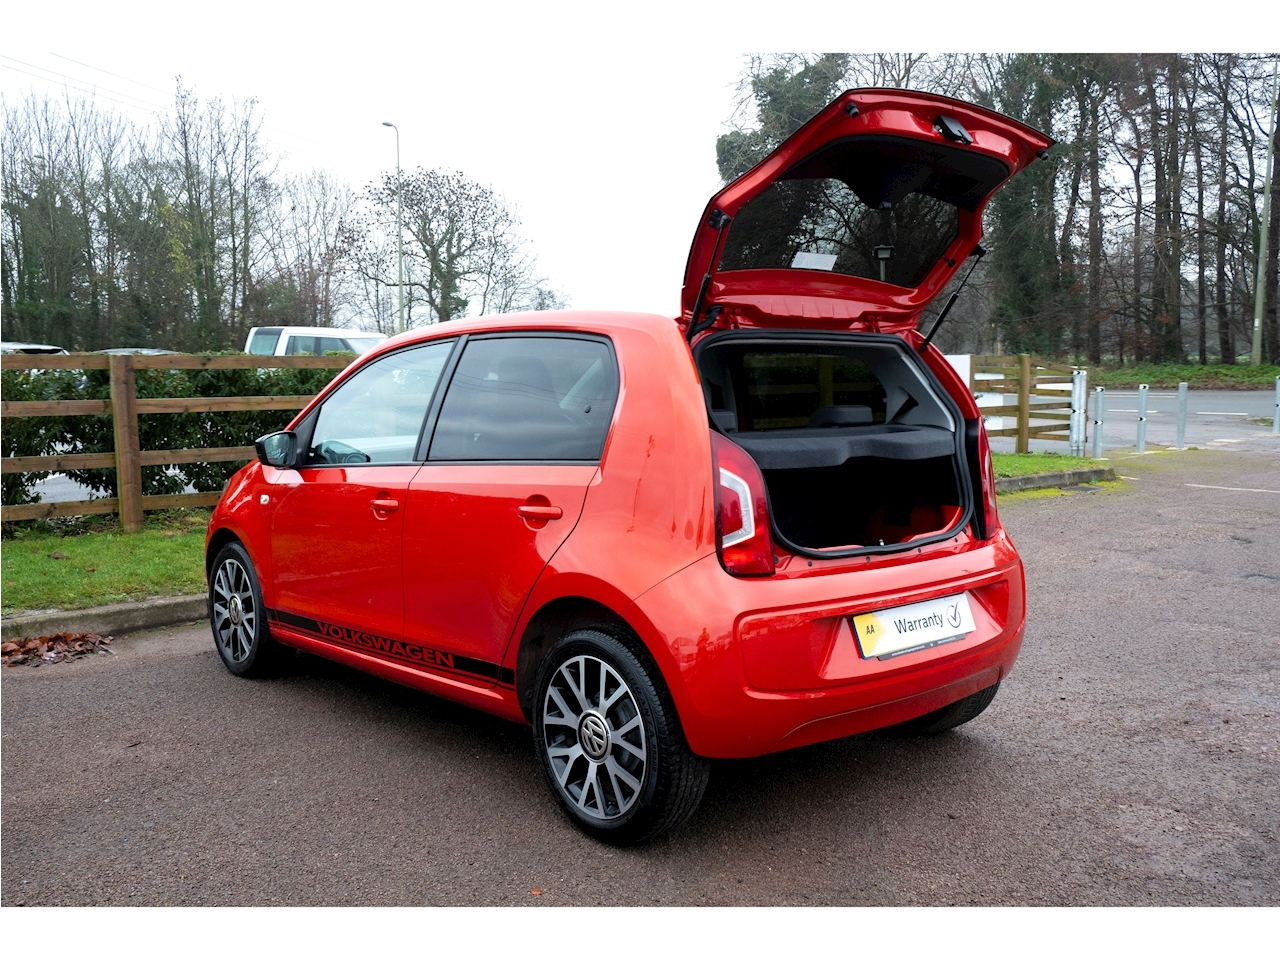 Volkswagen Up Groove Up Hatchback 1.0 Manual Petrol